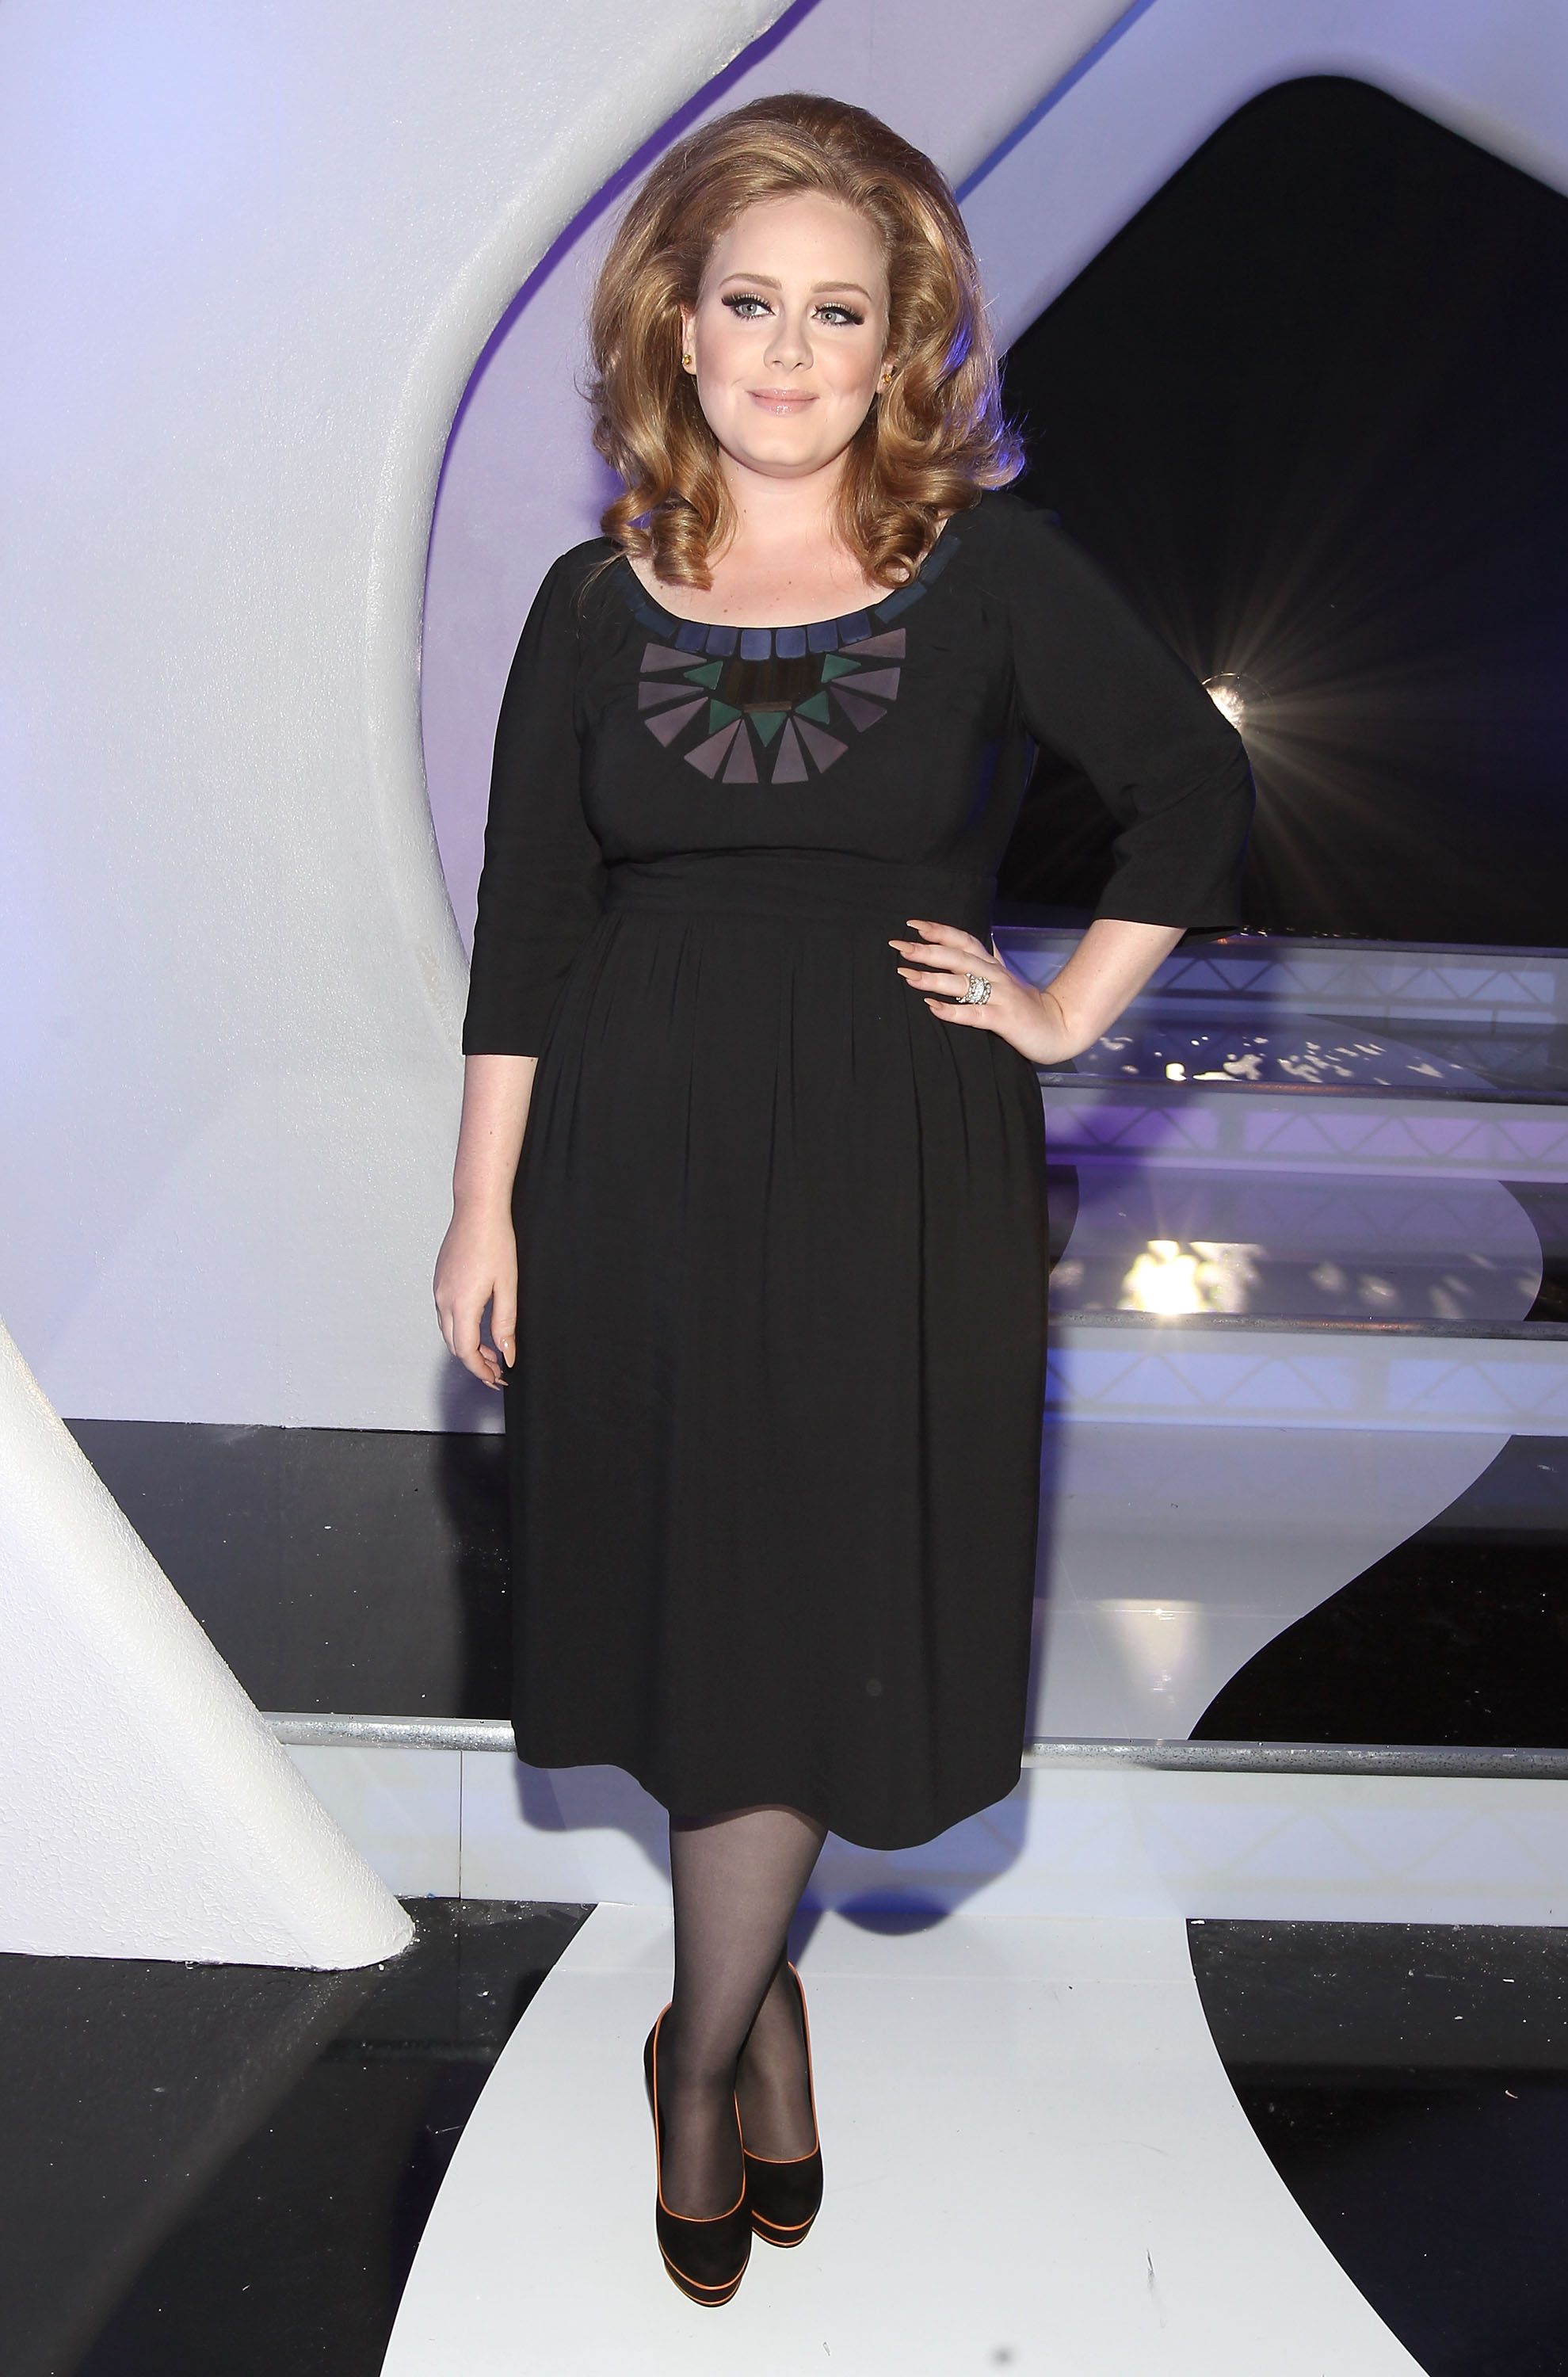 Adele Gives Birth To Baby Boy, Maybe